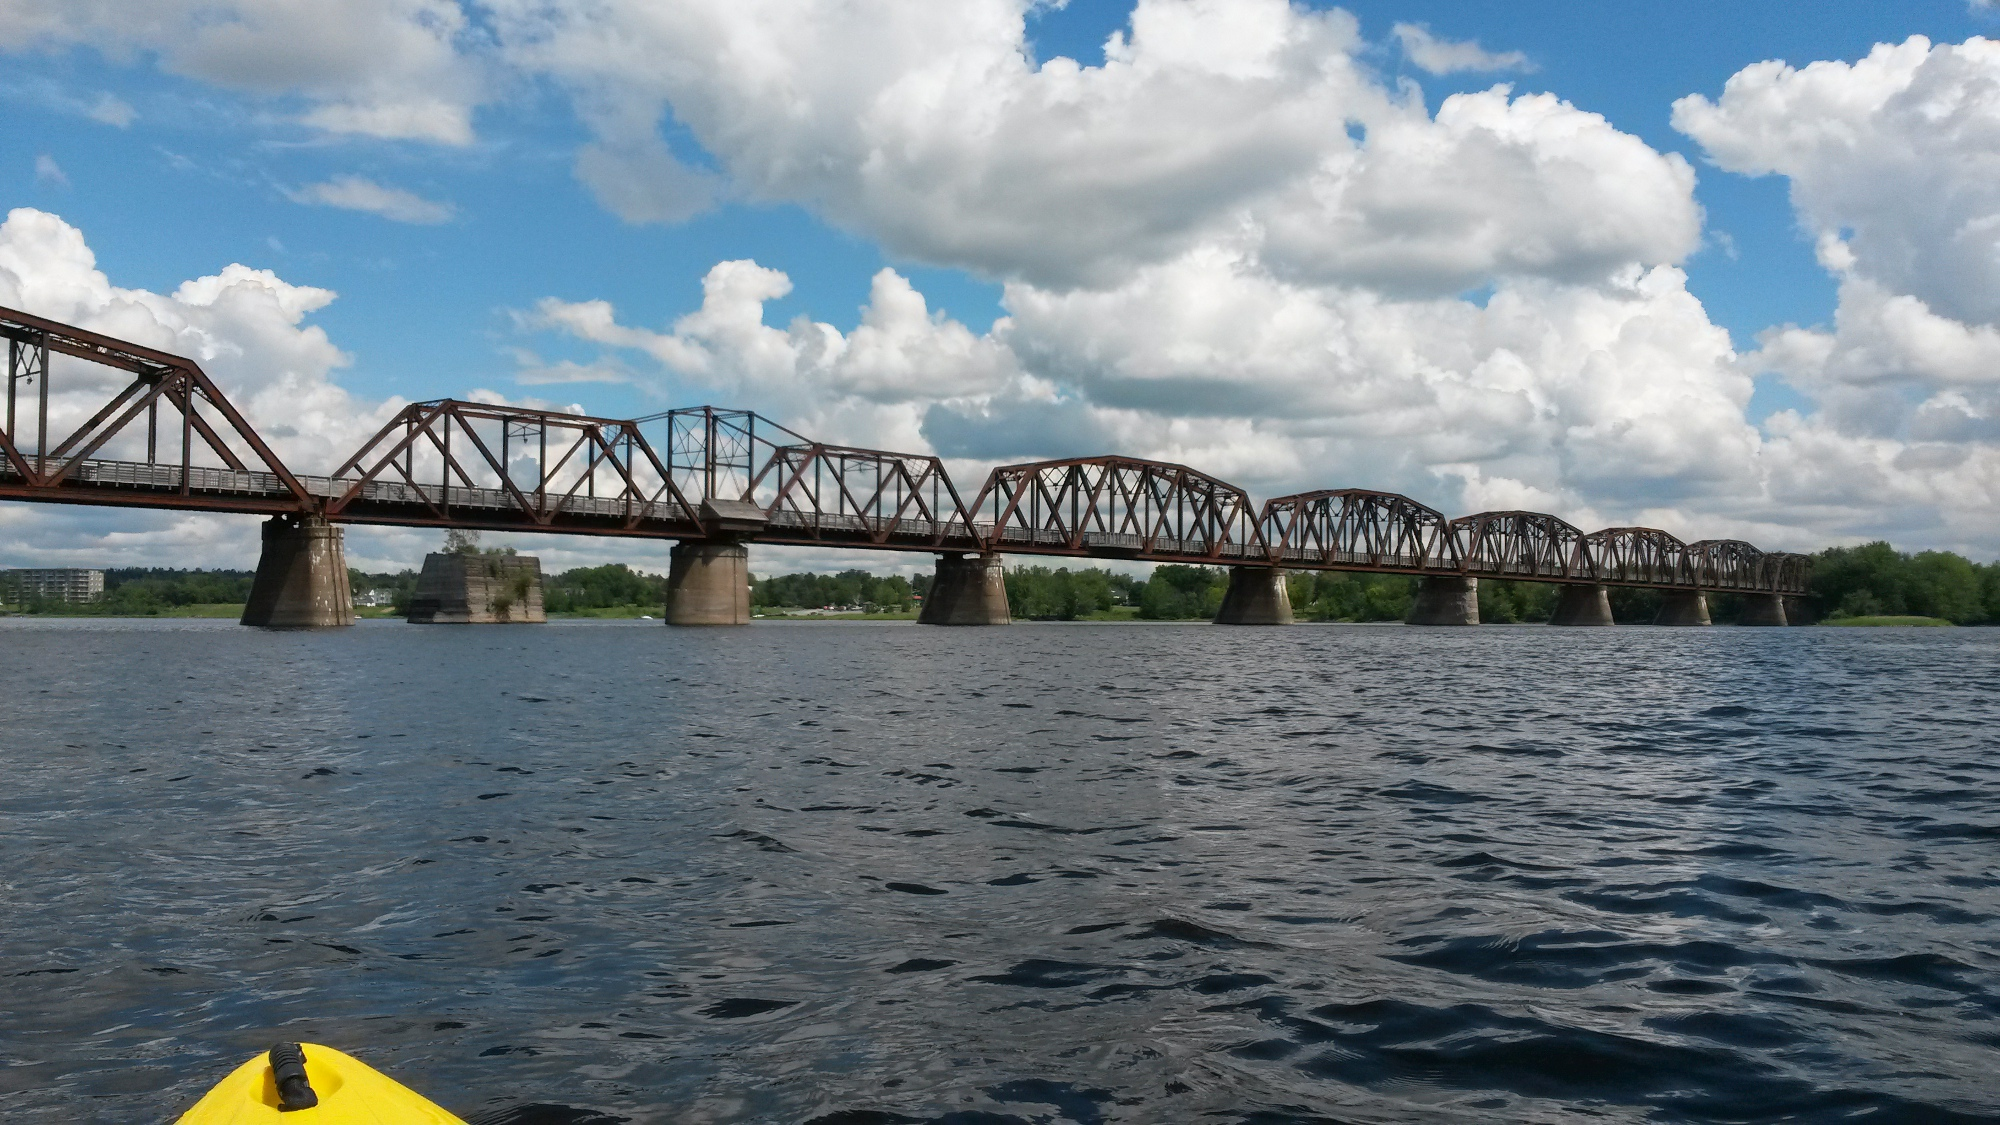 Fredericton old train bridge, seen from my kayak